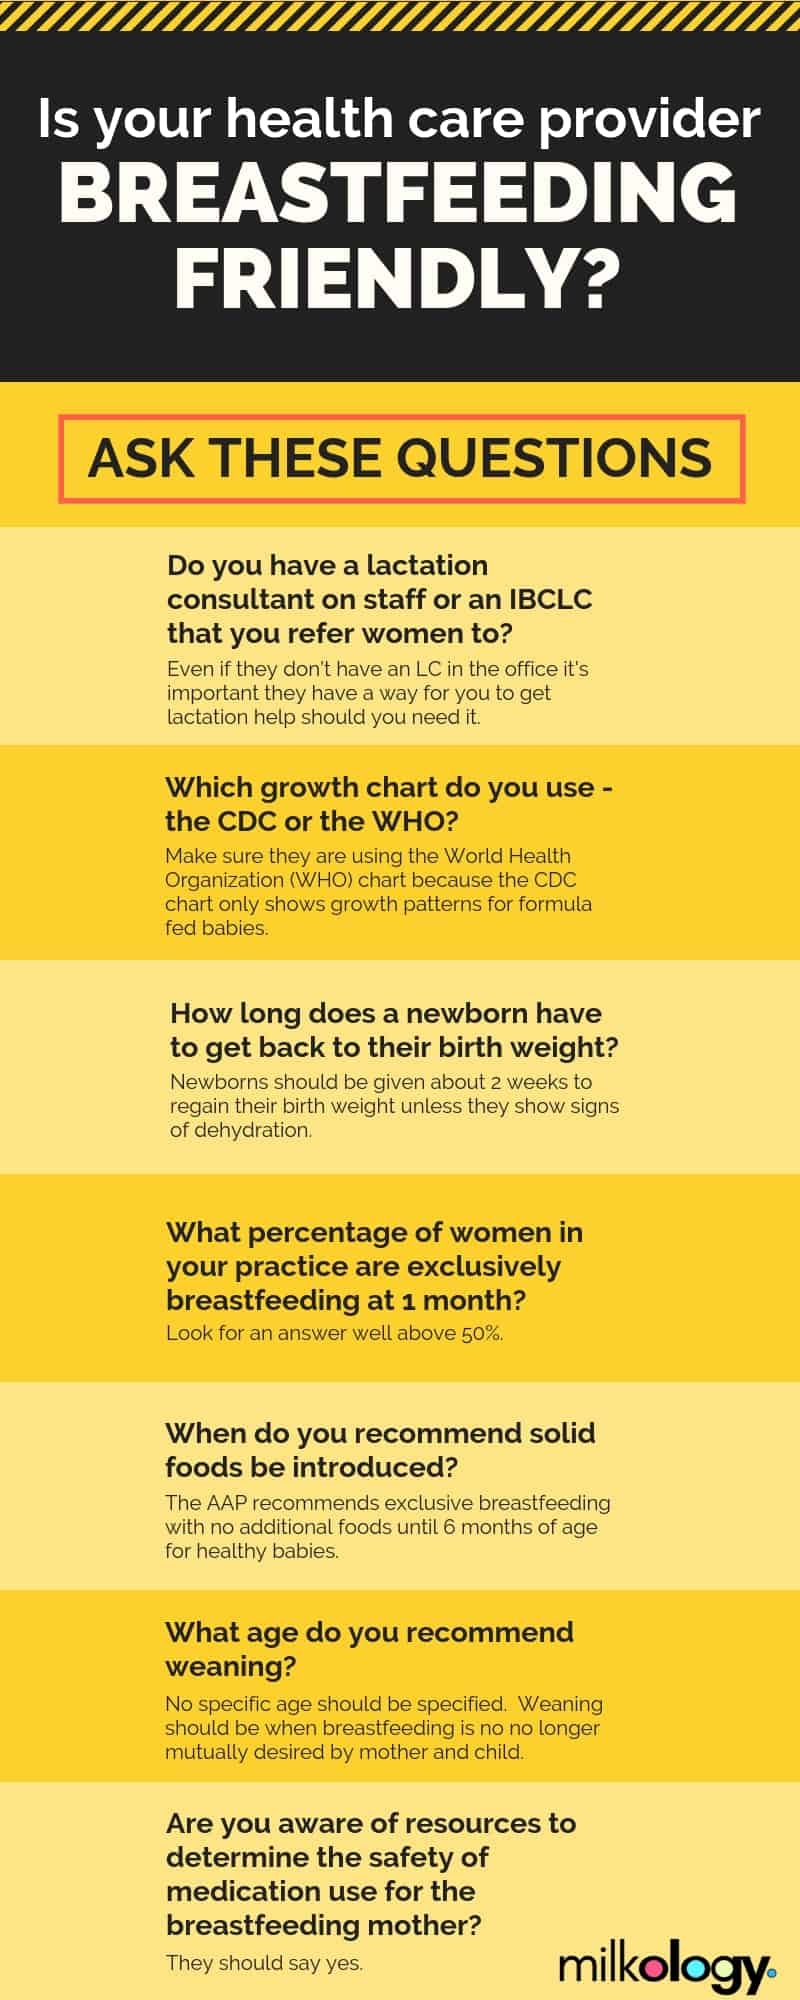 Questions and answers to see if your pediatrician is breastfeeding-friendly